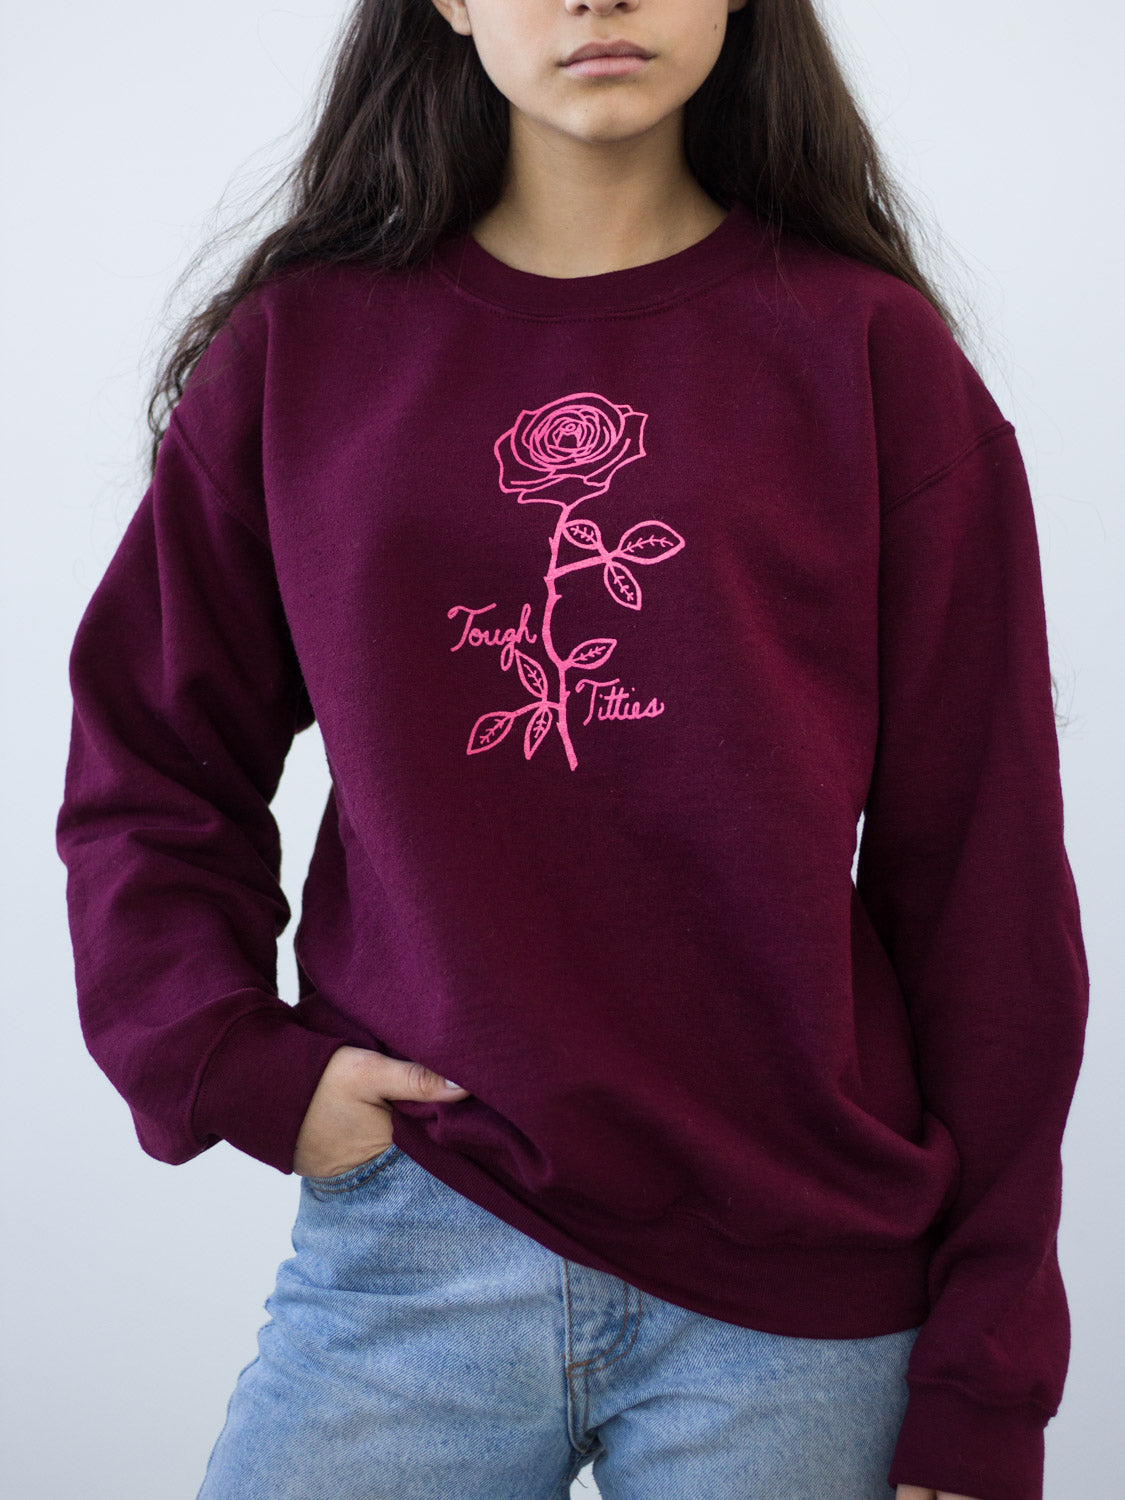 Slow Dog Designs // Tough Titties Sweatshirt